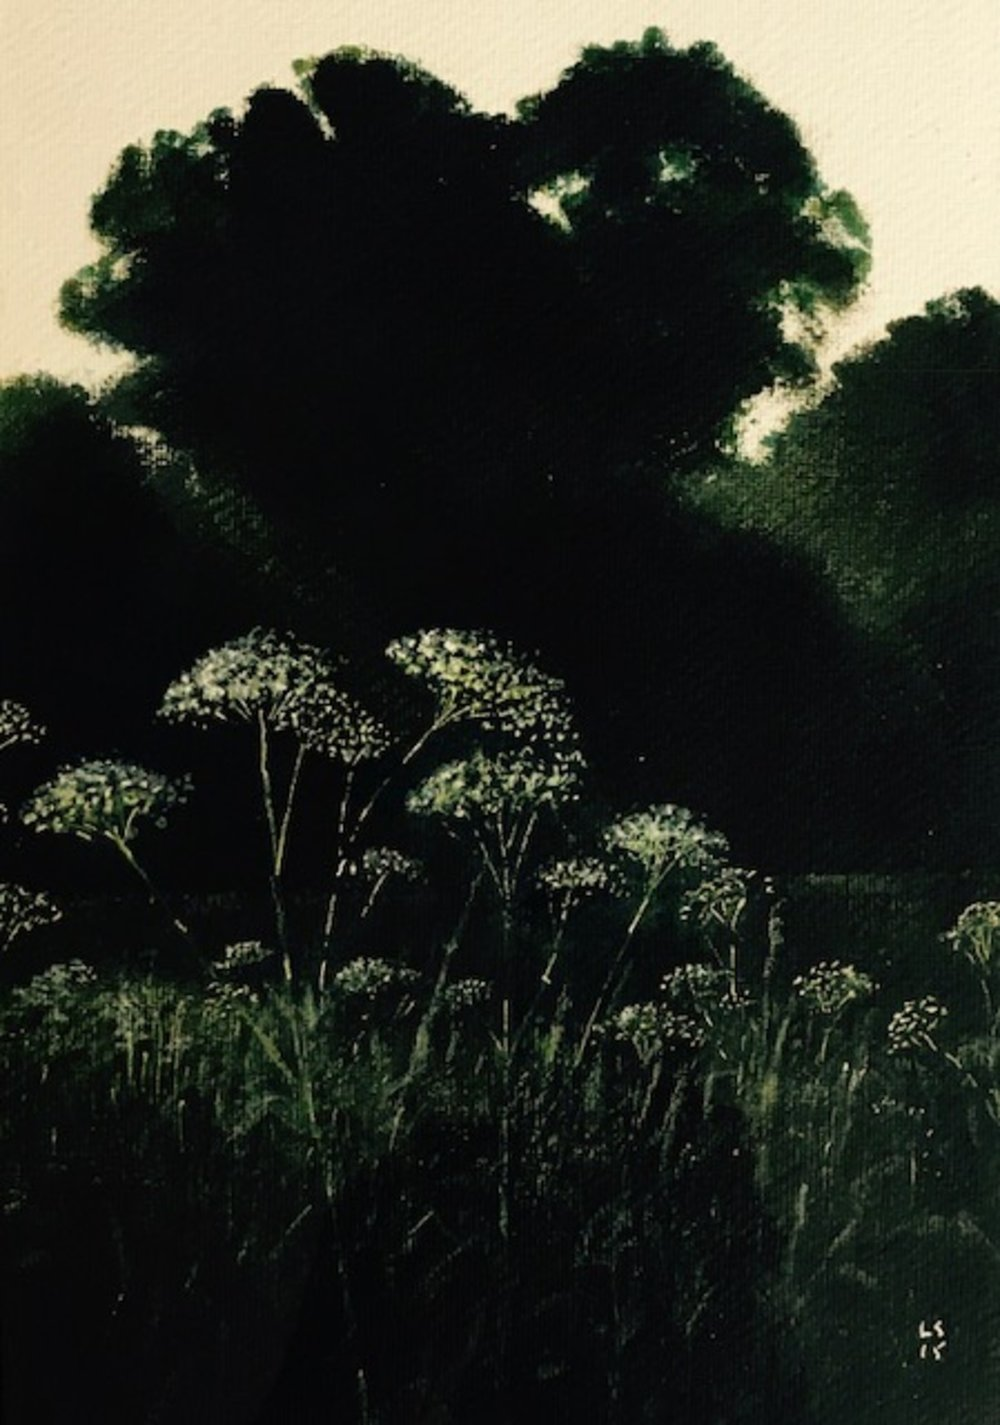 Cow Parsley on the Test